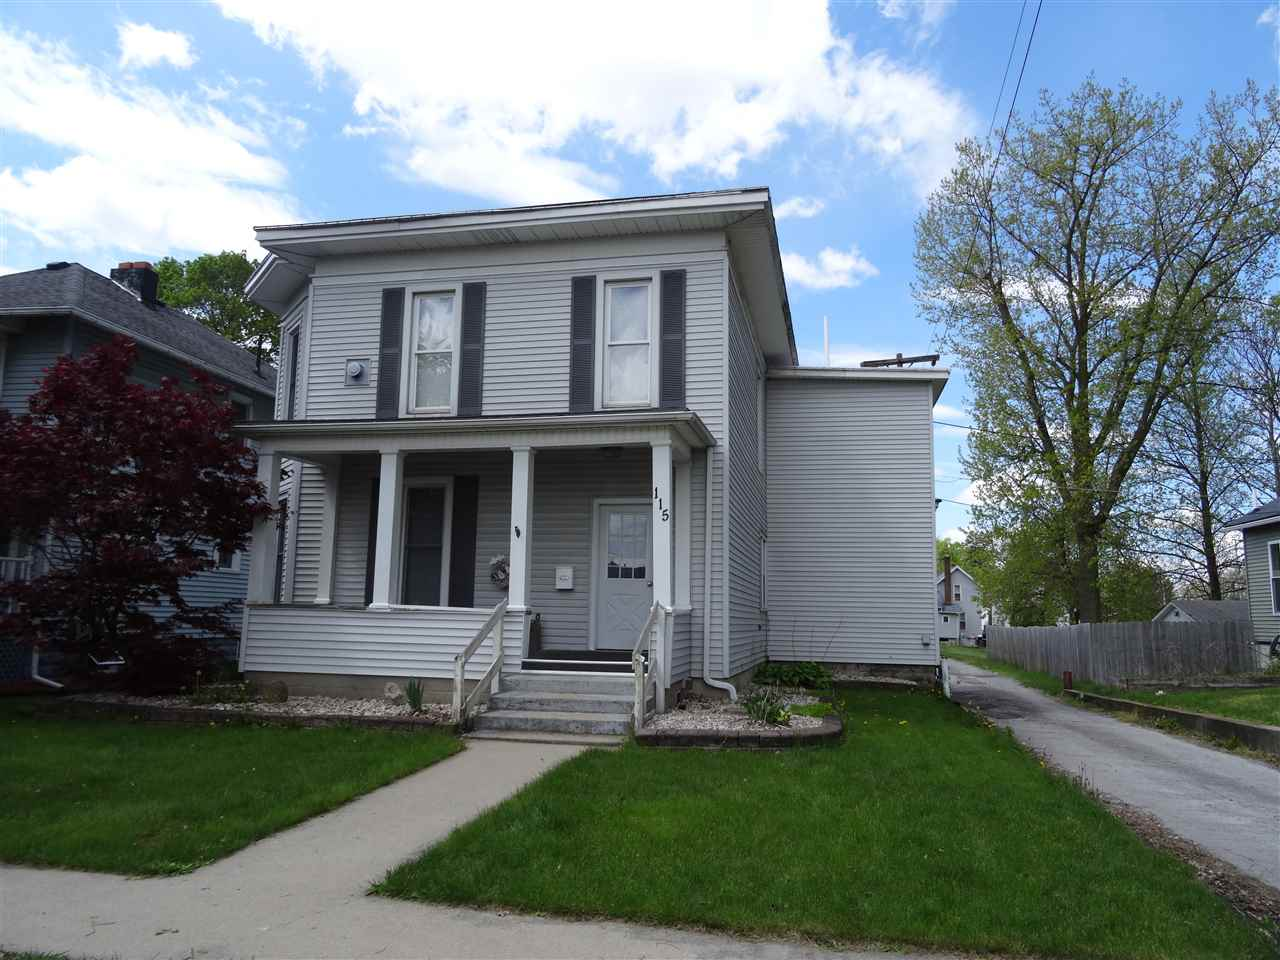 115 N Orchard, Kendallville, IN 46755